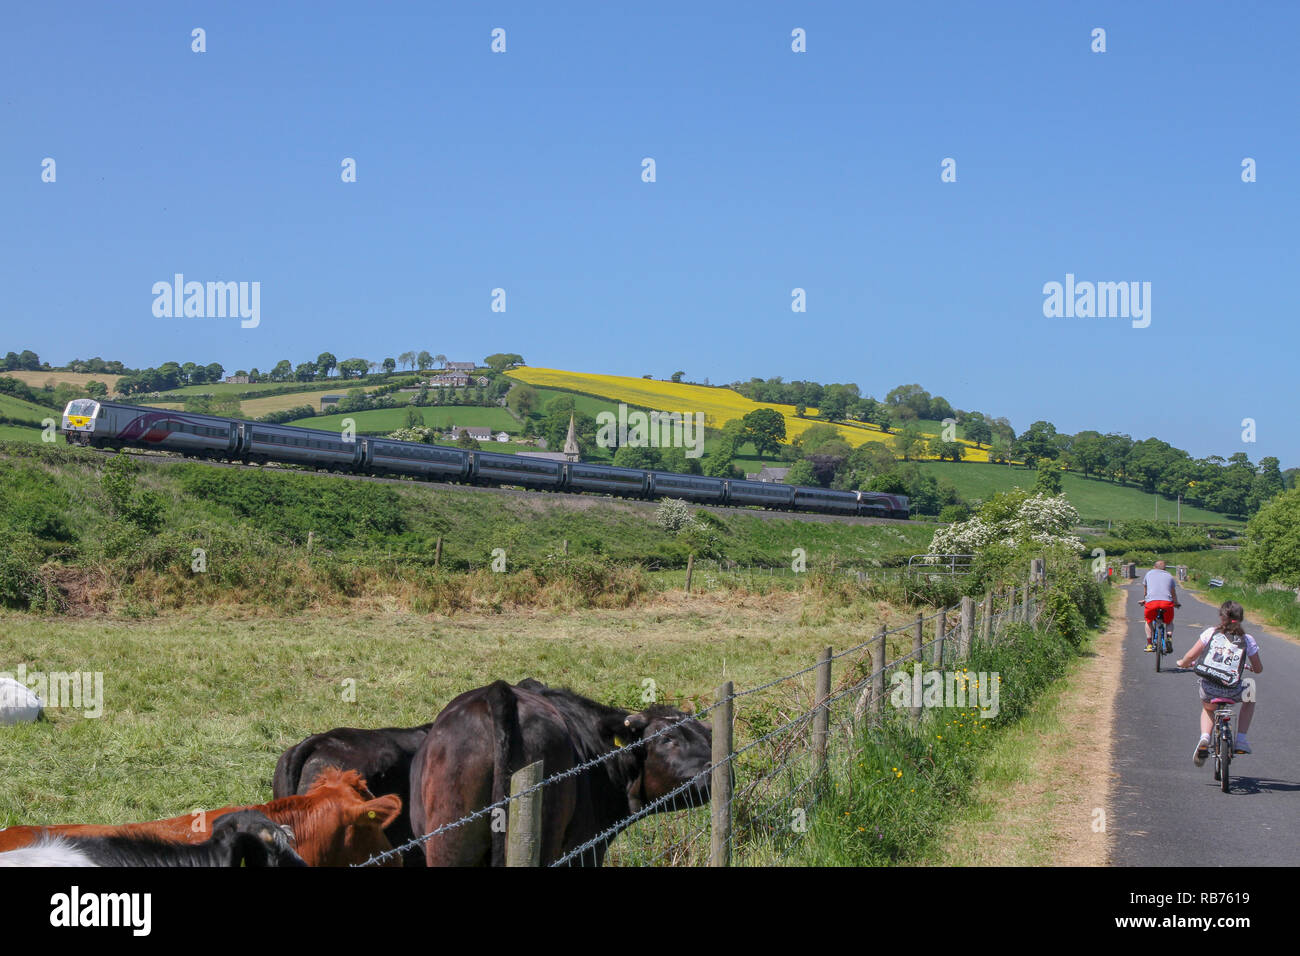 The Irish cross-border train in the County Down countryside as cyclists travel along the Newry Canal towpath near the village of Jerretspass. - Stock Image